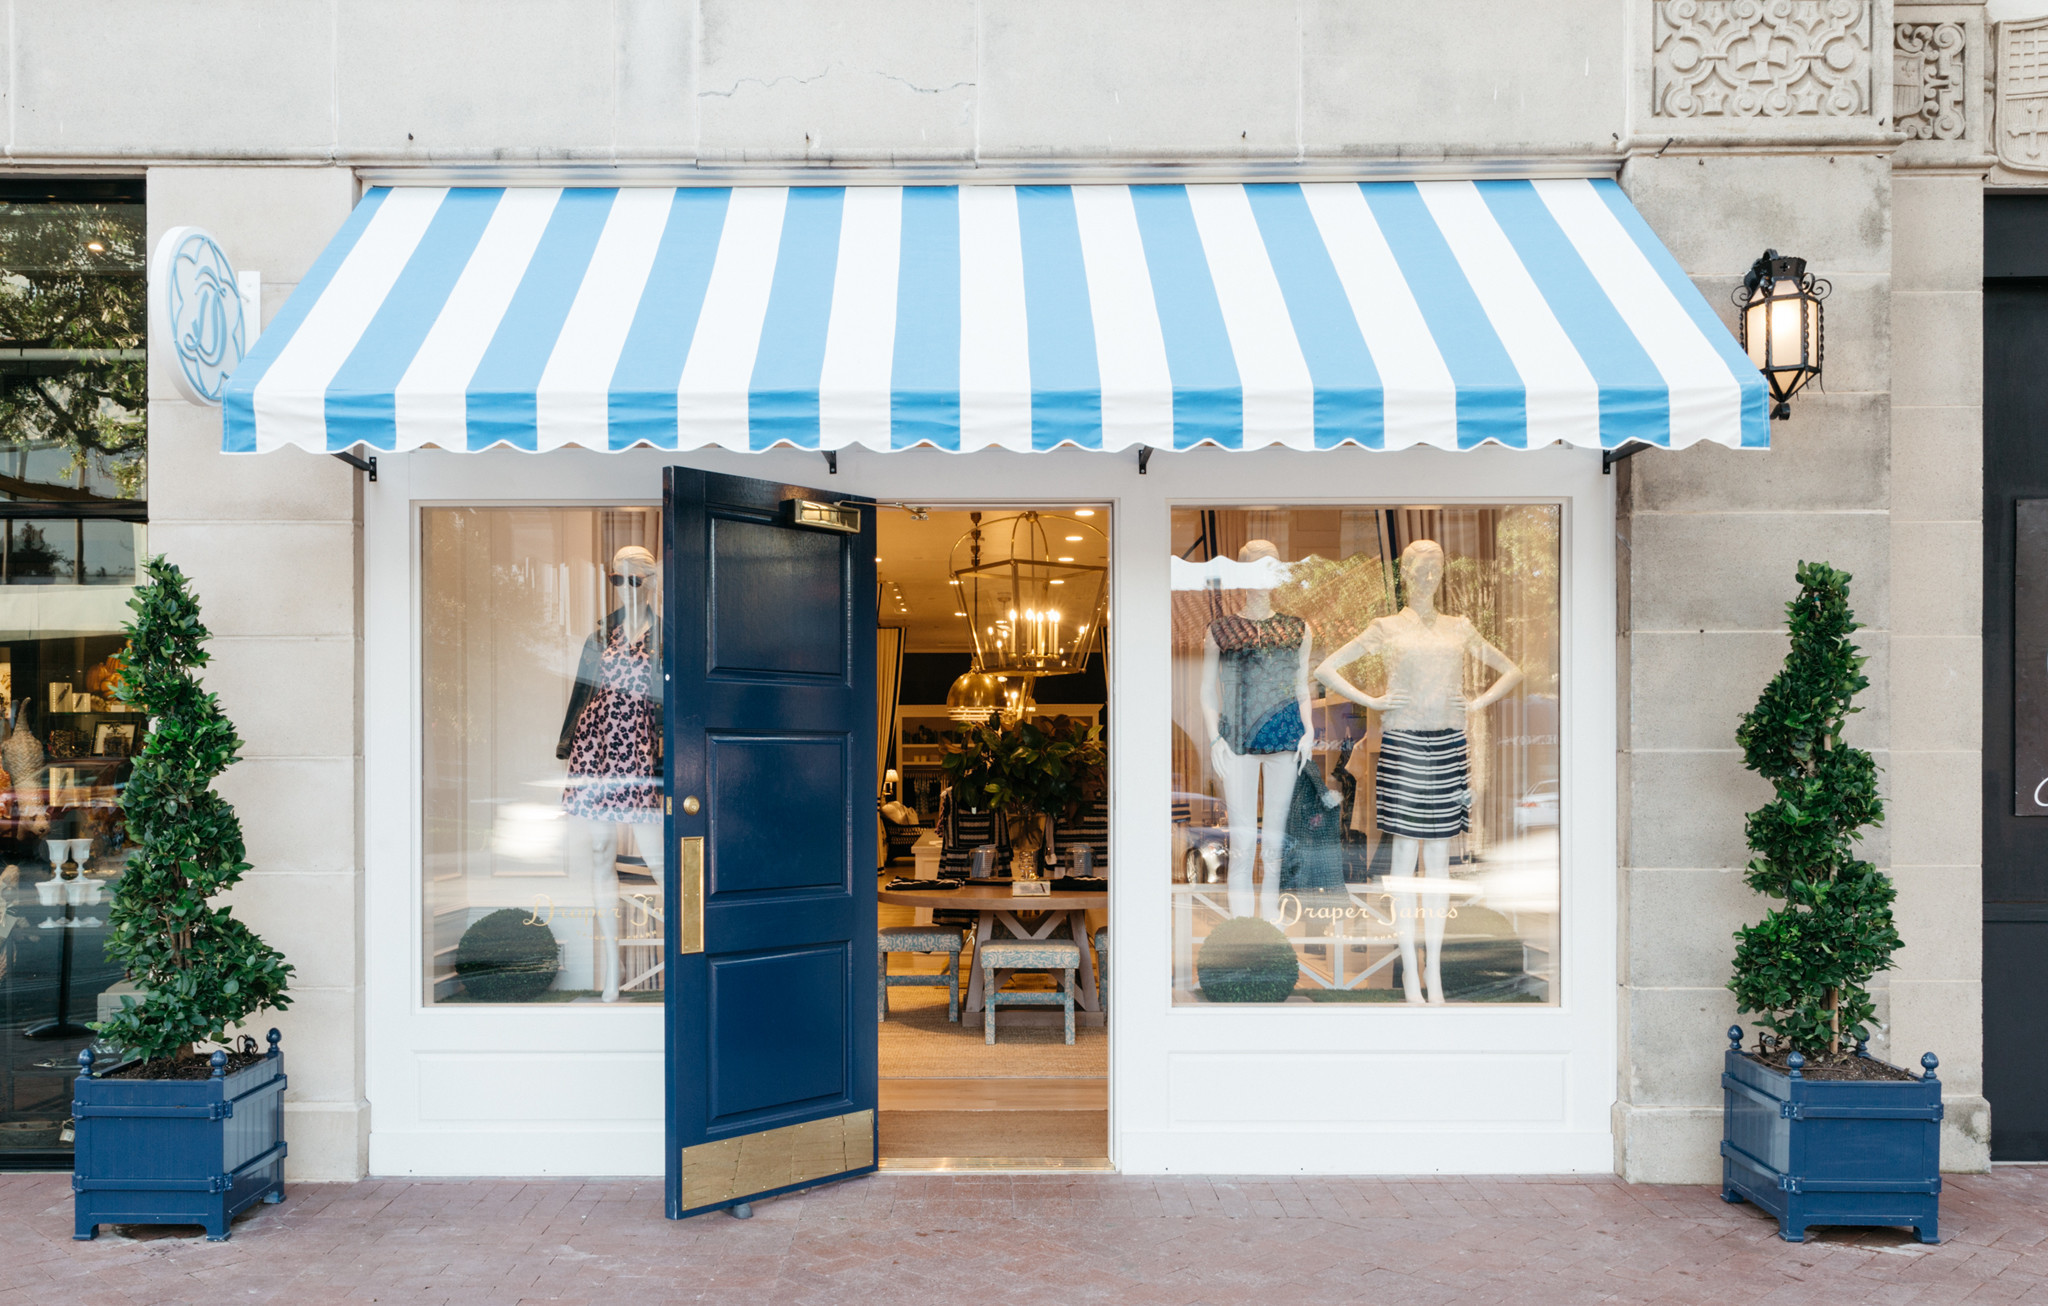 Exterior: Reese Witherspoon Opens Second Draper James Store